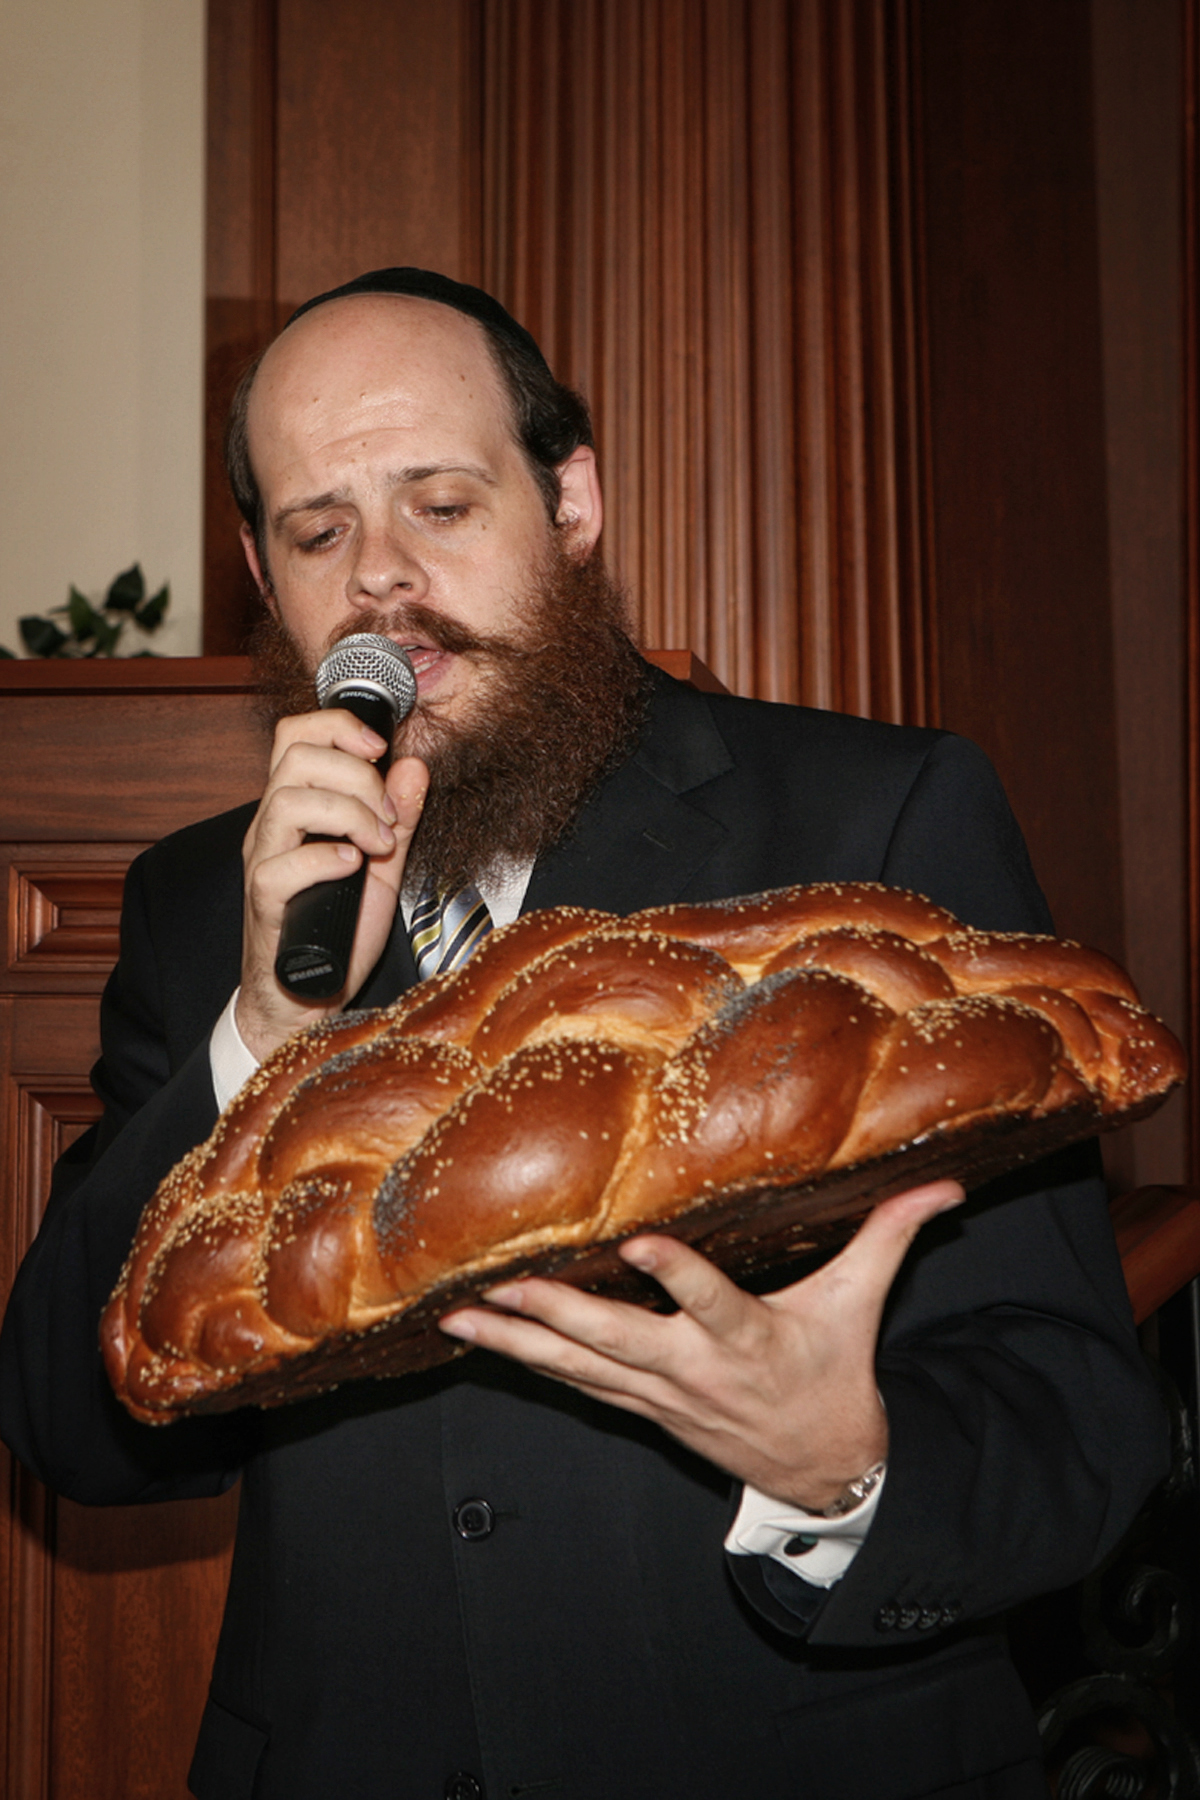 03-rabbi-challah bread-orlando-maitland-photographer.JPG